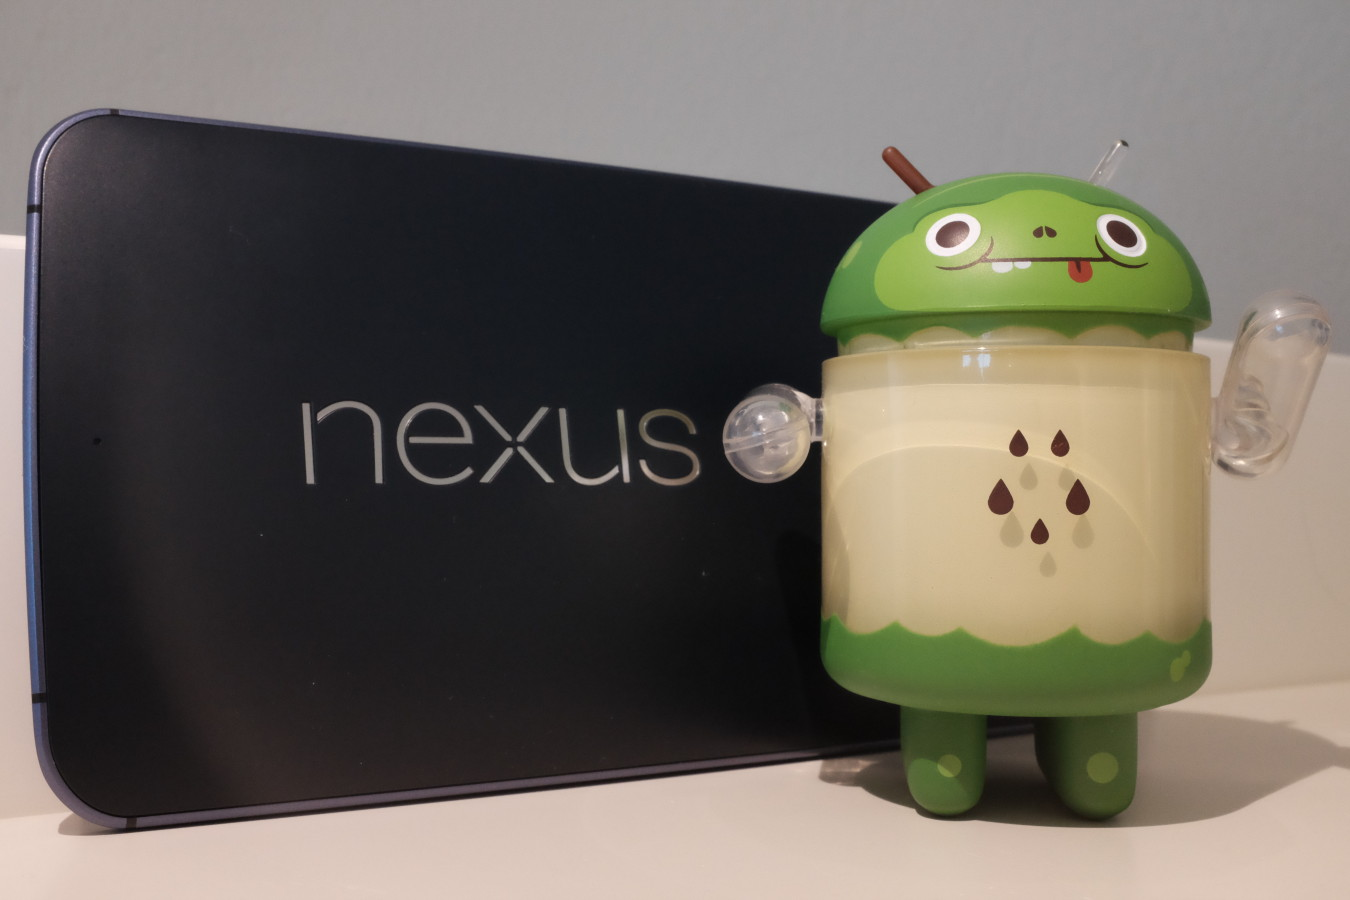 Nexus 6 and Android Watermellom